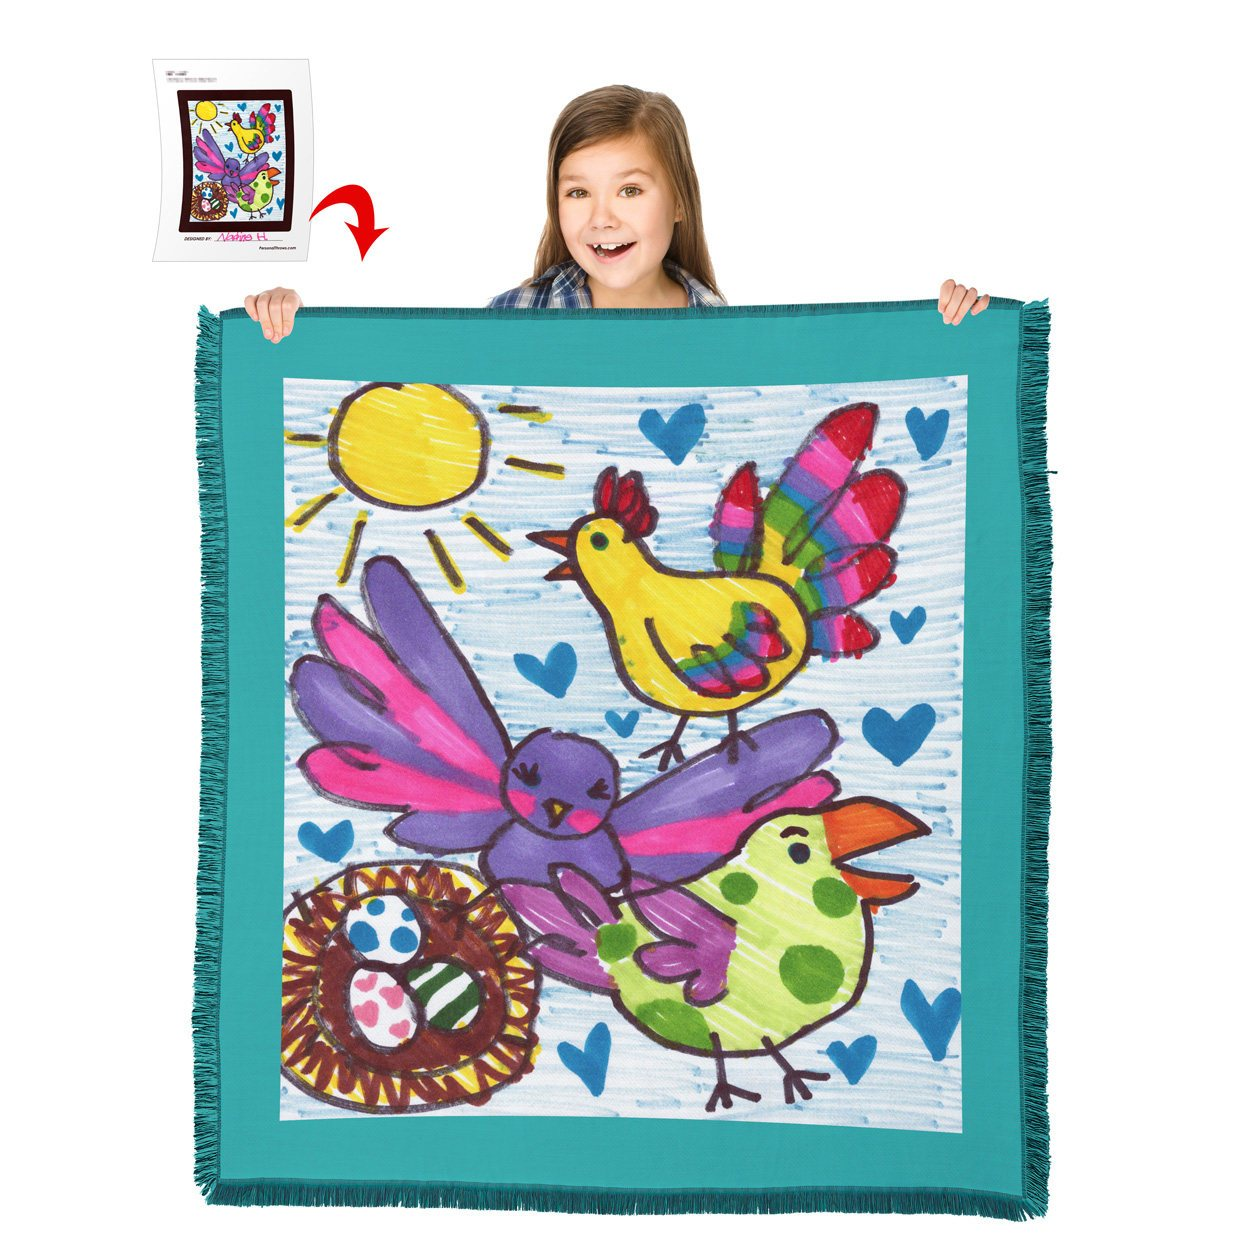 Turn Your Child's Drawing into a 60″ x 54″ HD Woven Throw Blanket